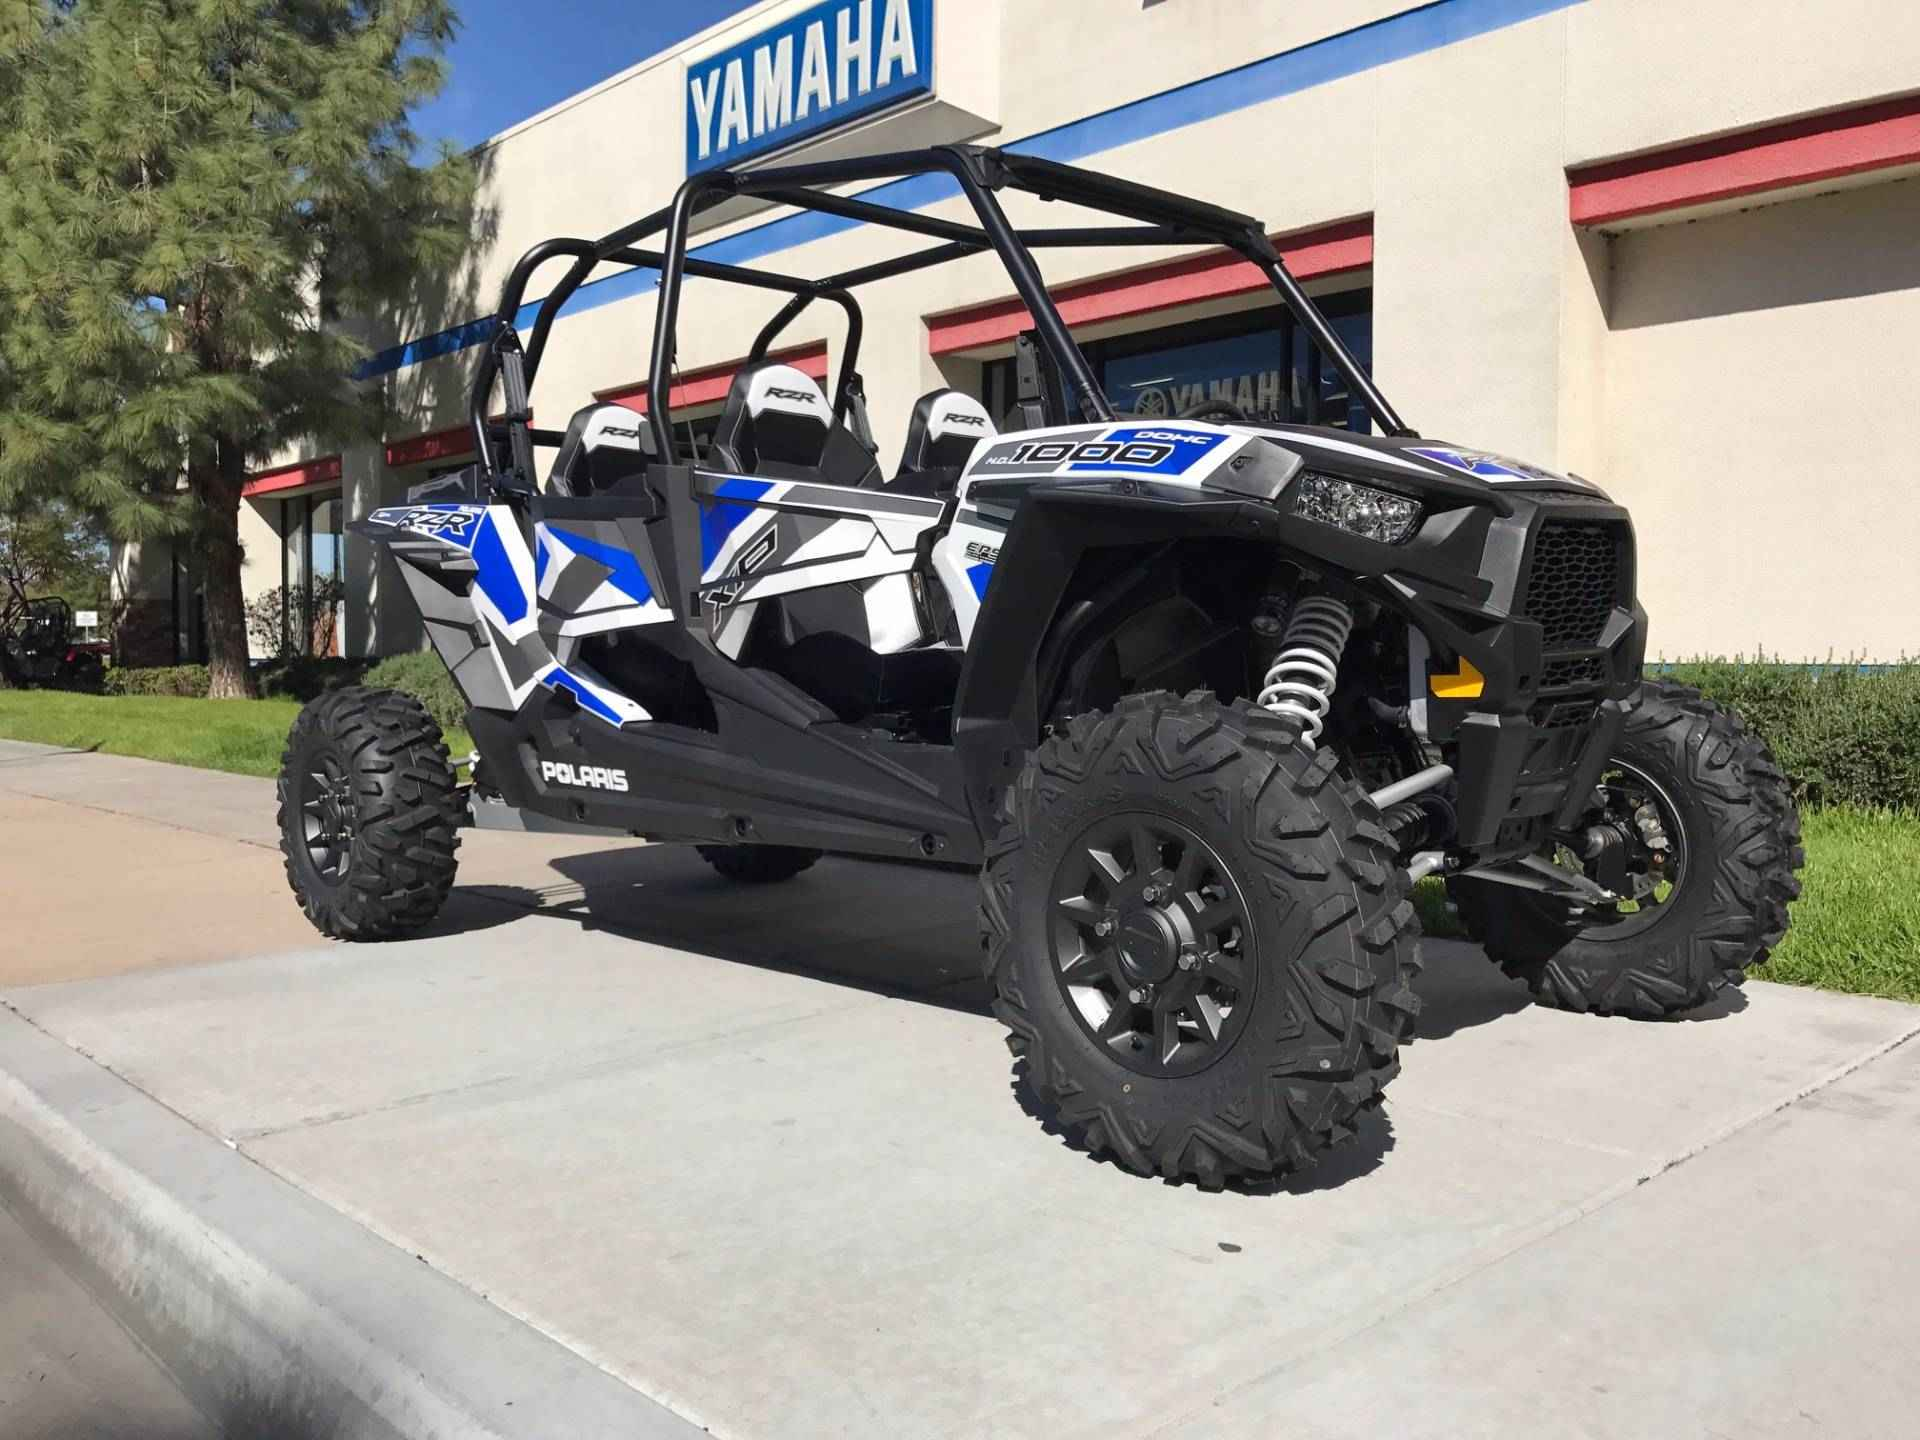 new 2017 polaris rzr xp 4 1000 eps atvs for sale in california on atv trades. Black Bedroom Furniture Sets. Home Design Ideas